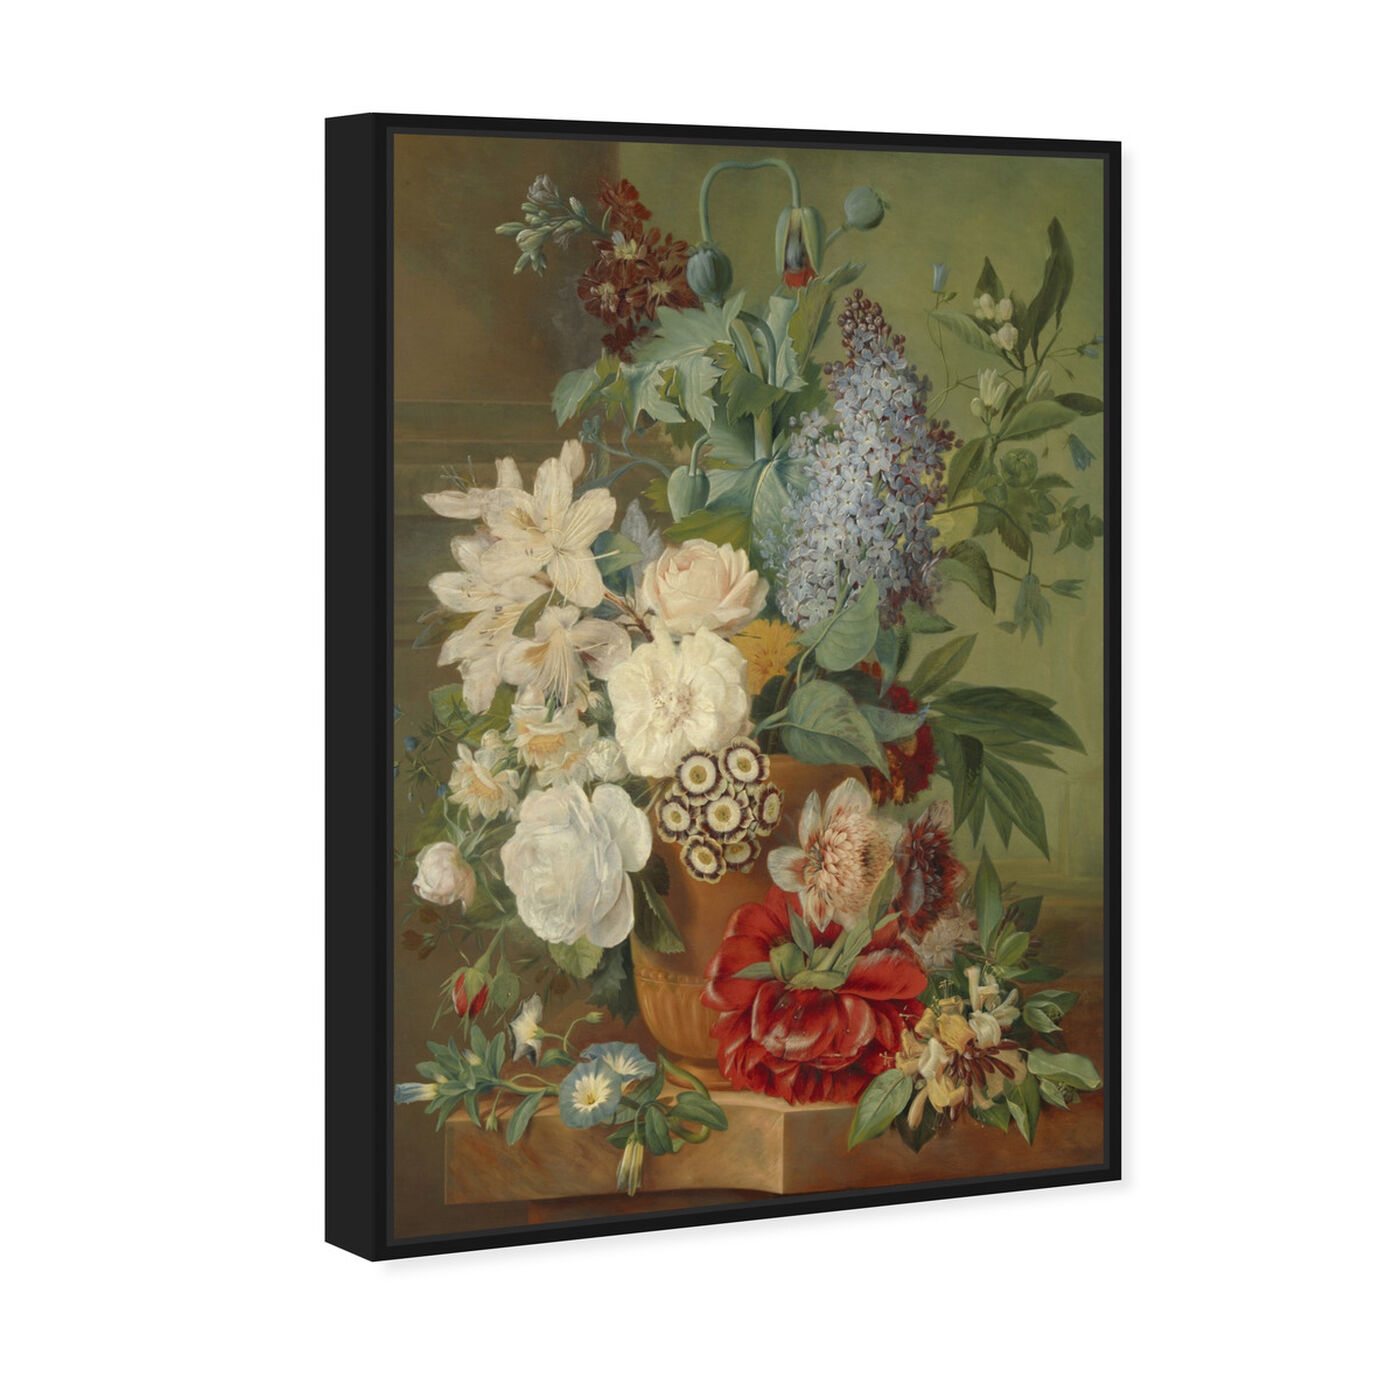 Angled view of Flower Arrangement VIII - The Art Cabinet featuring classic and figurative and french décor art.